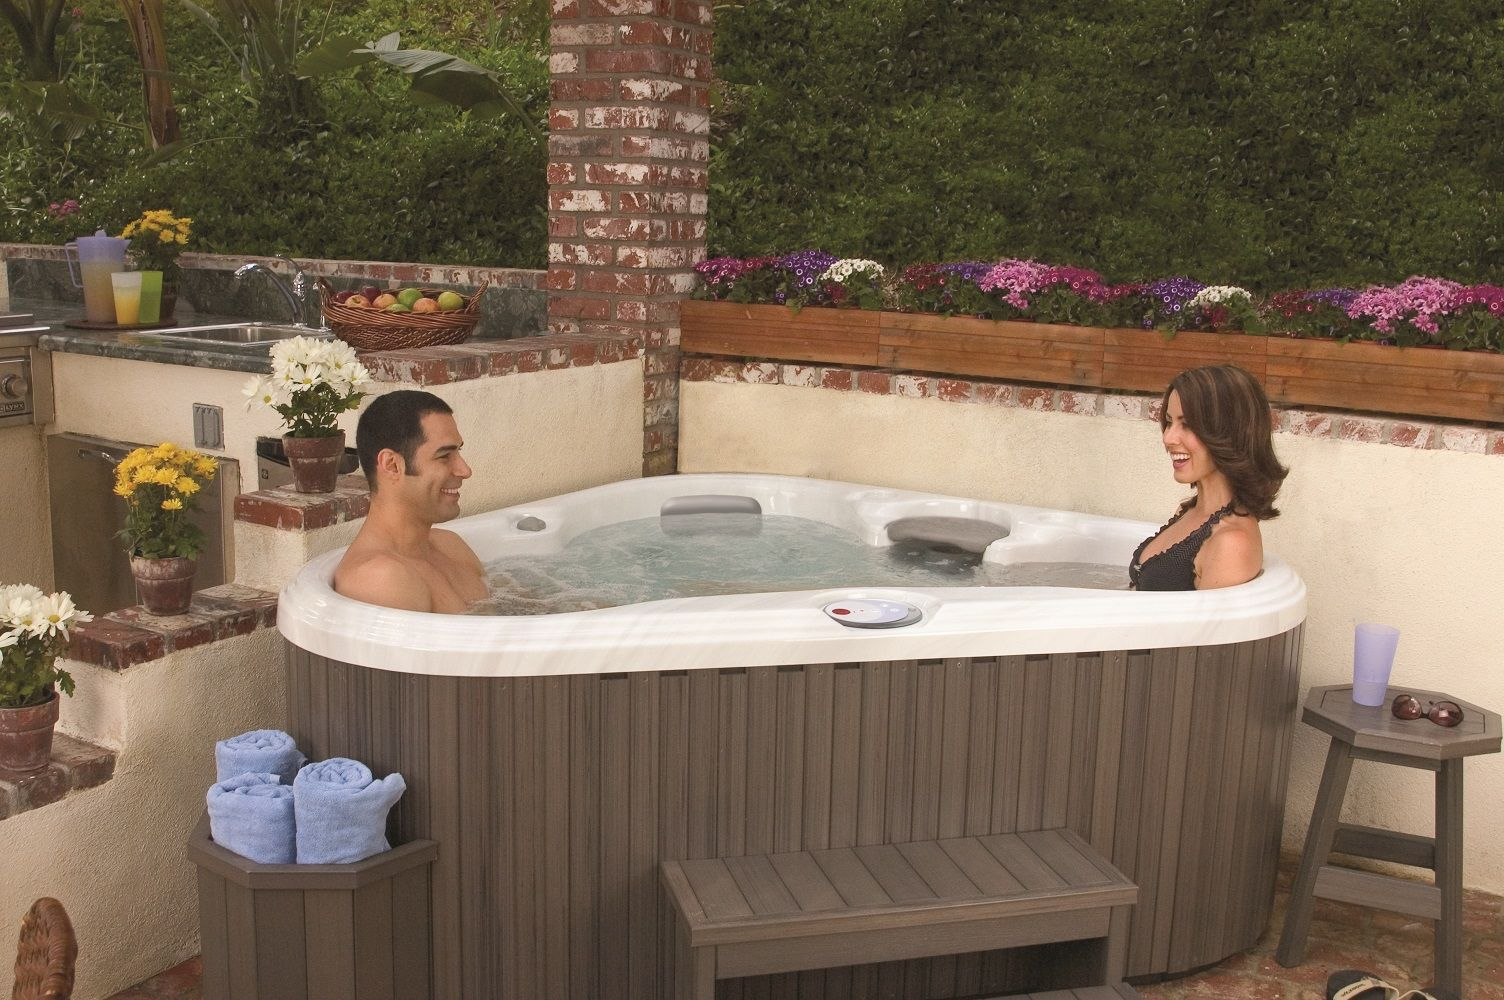 As the largest spa manufacturer in the world sundance